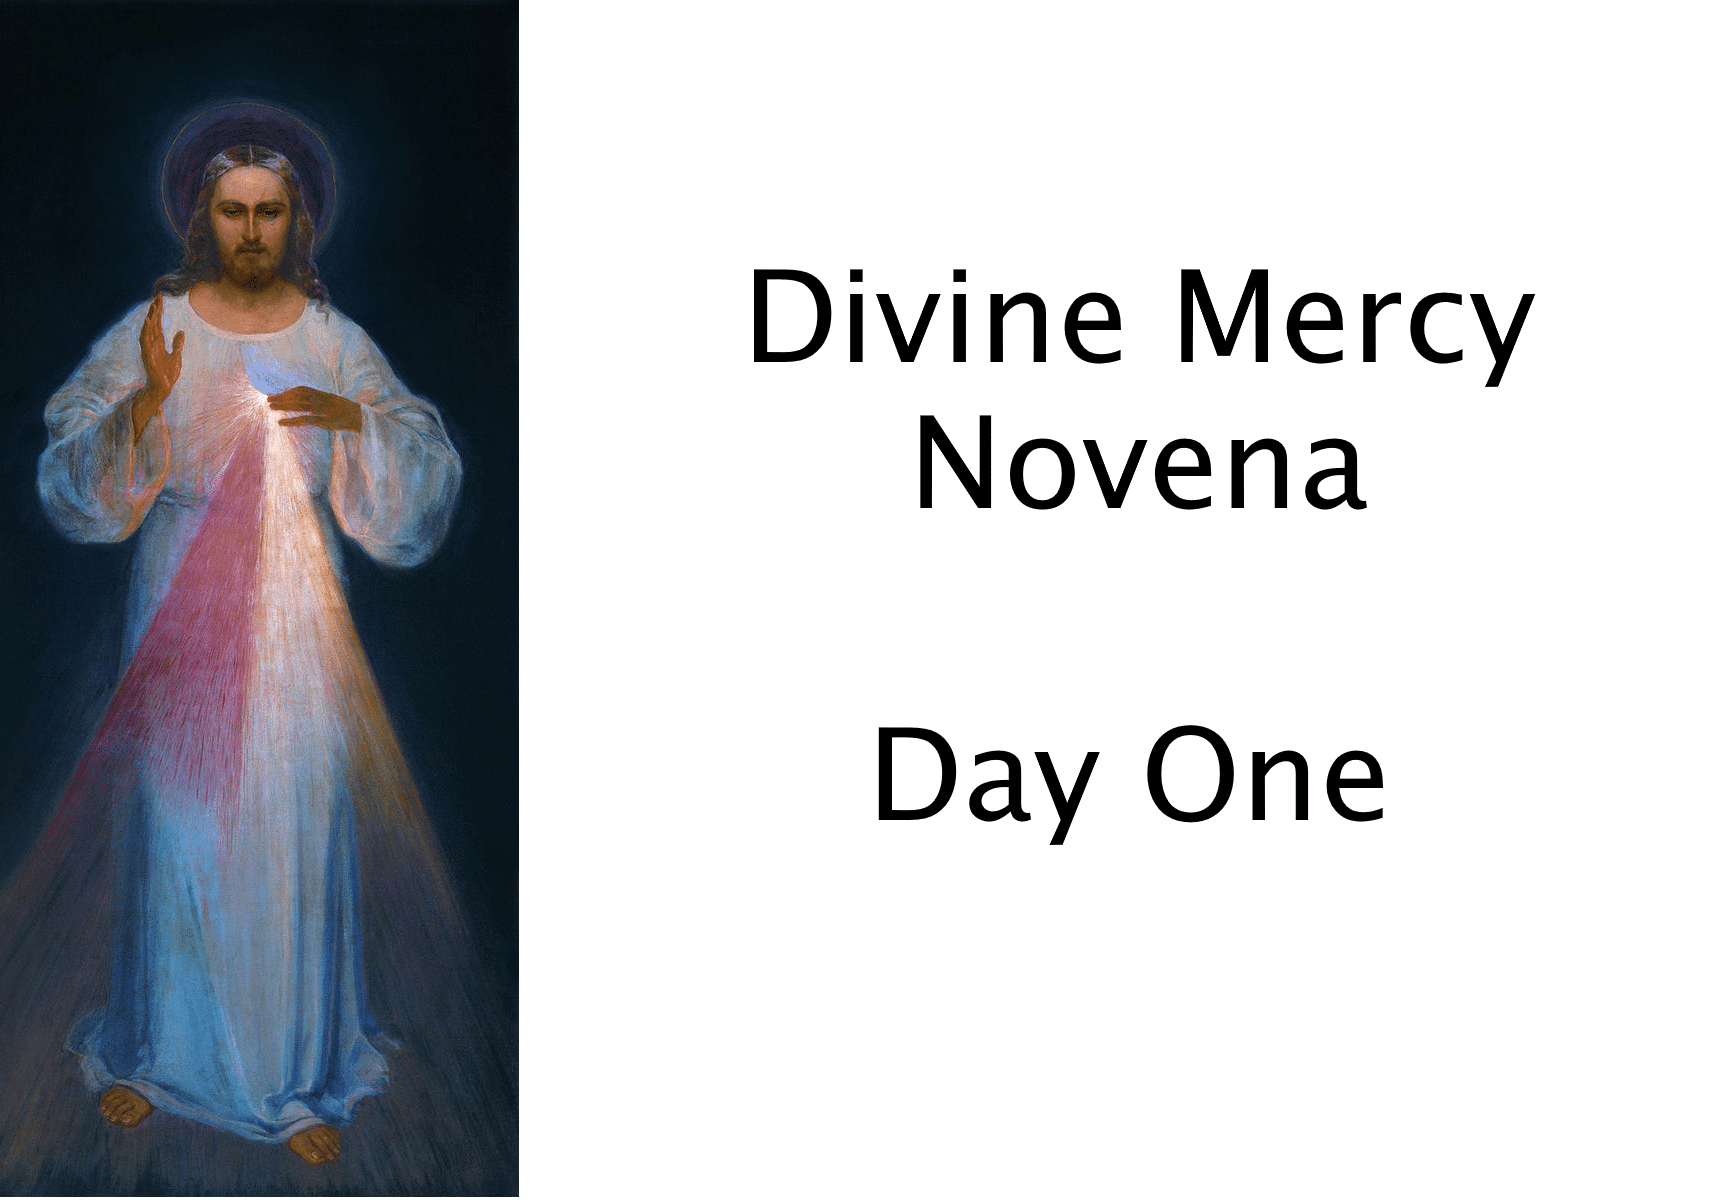 Divine Mercy Novena Day One